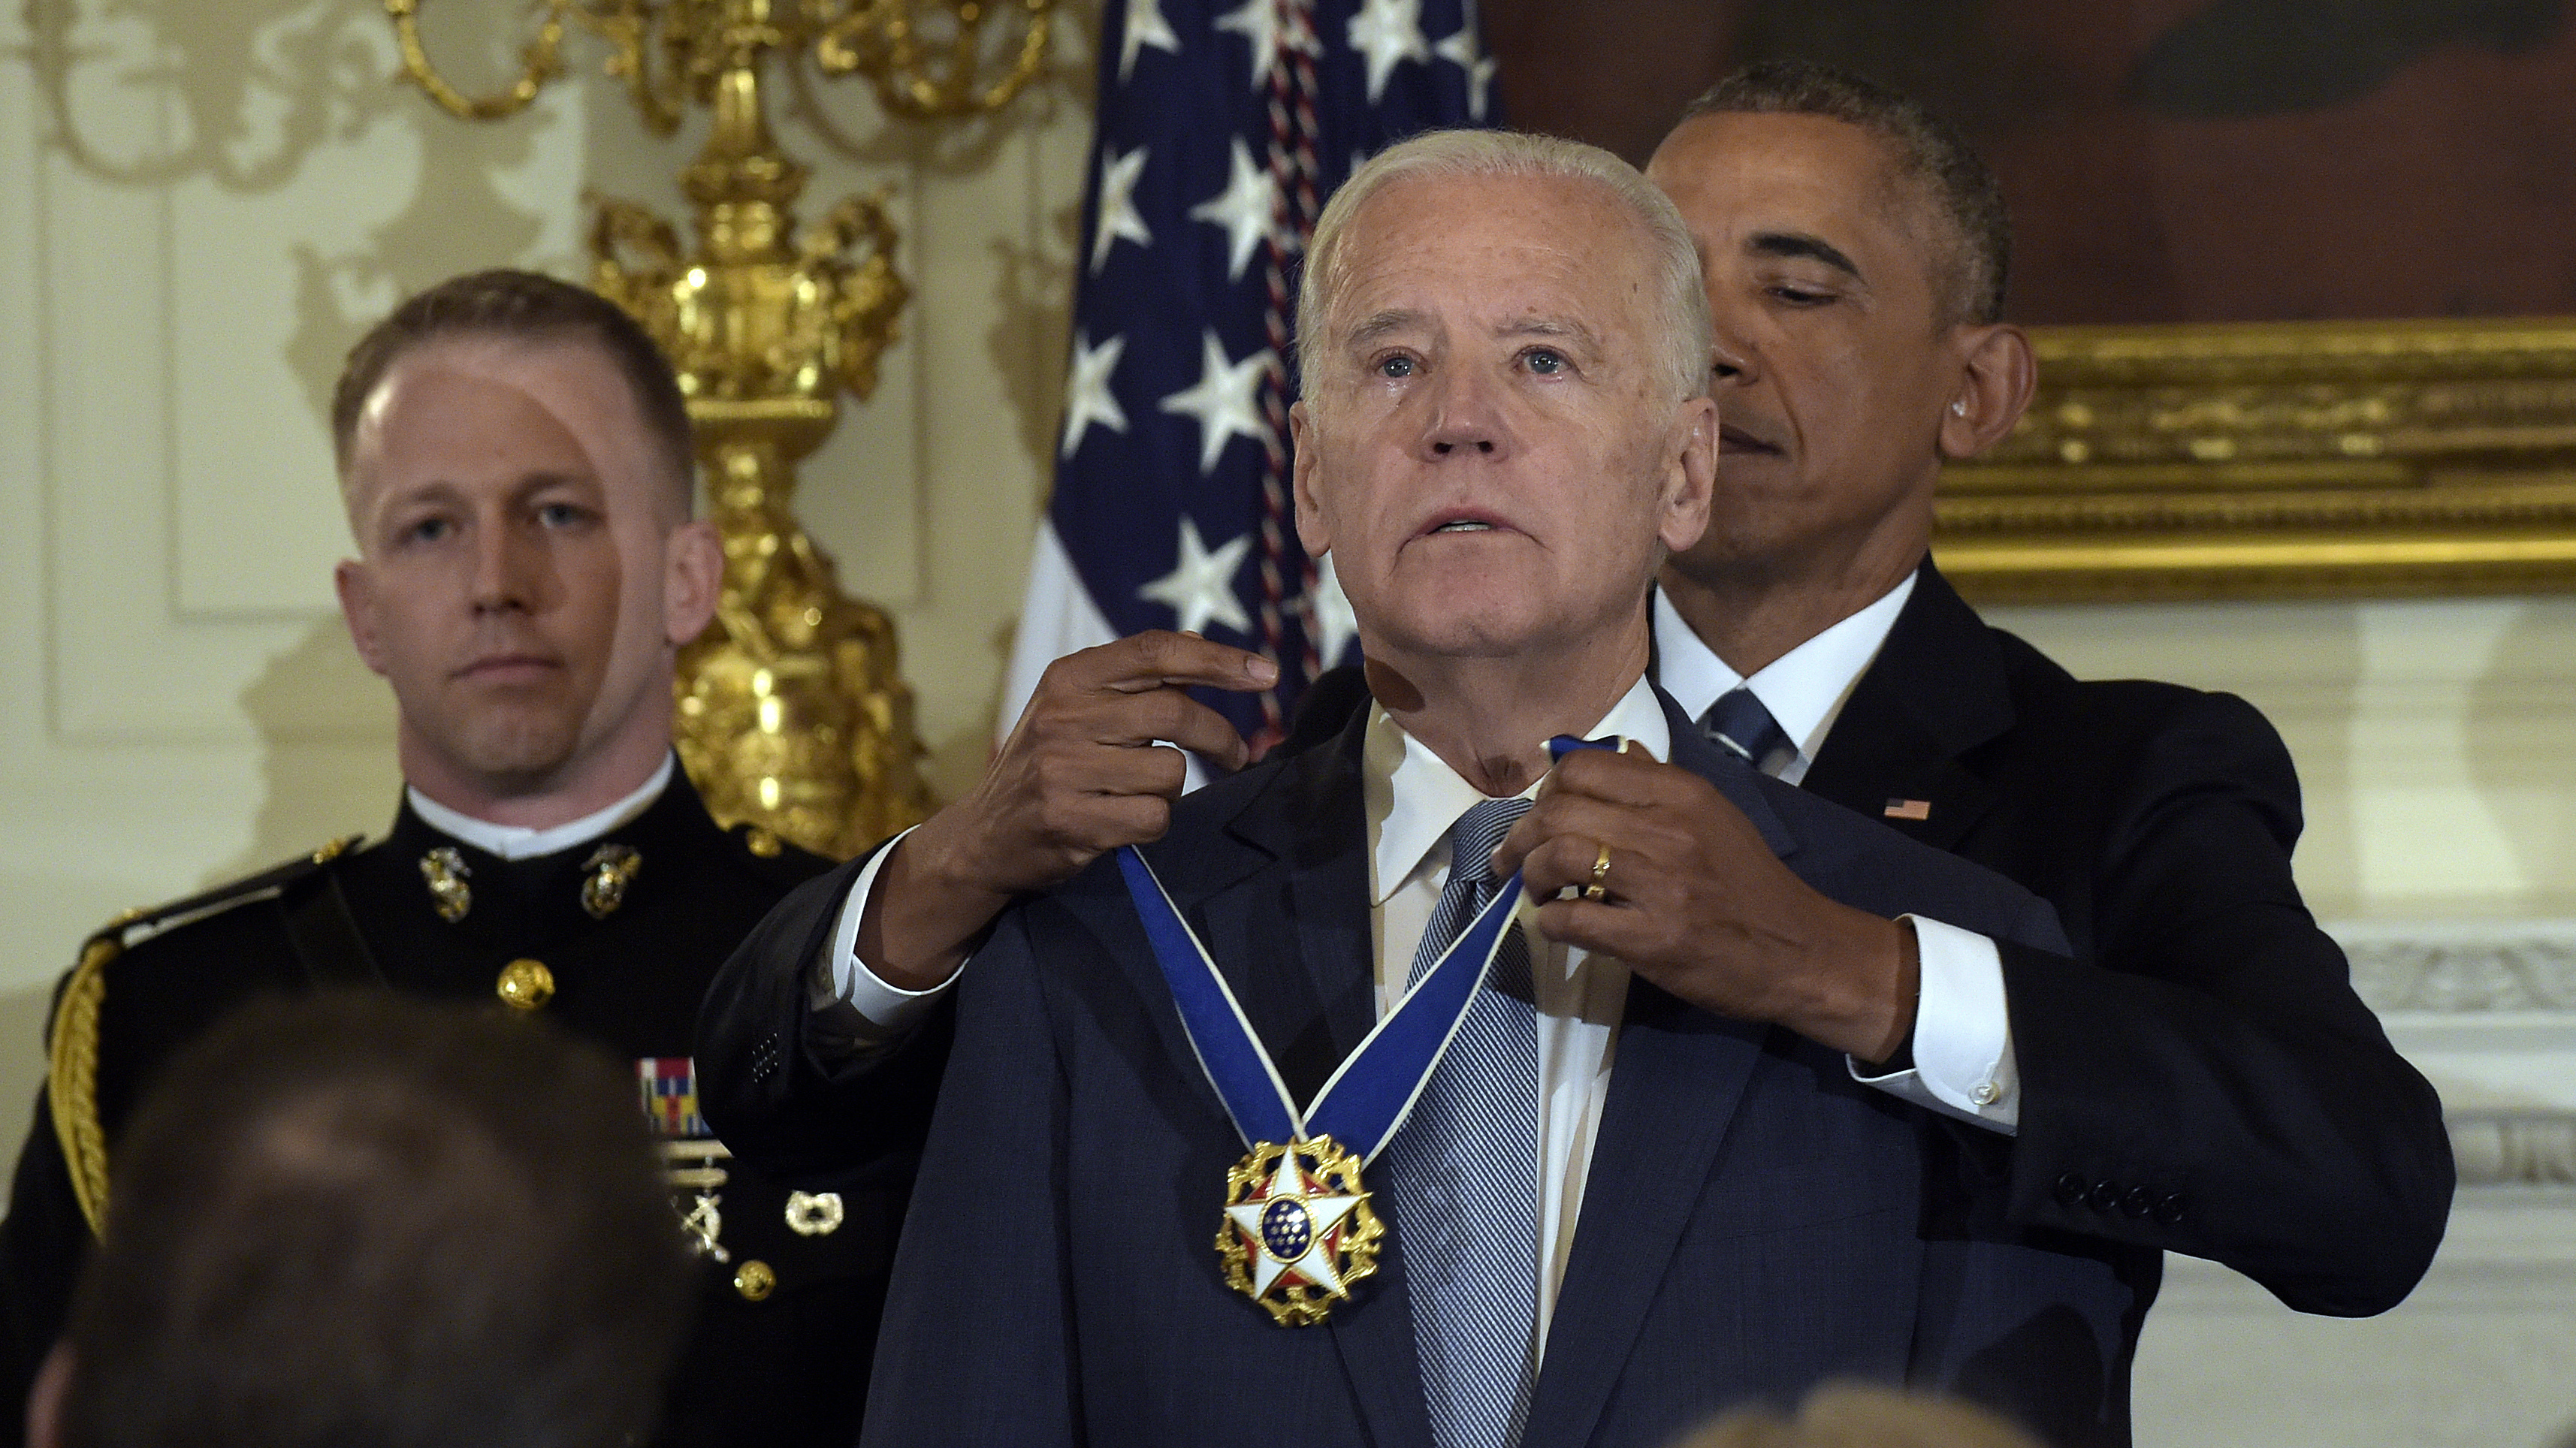 In A Surprise Send-Off, Obama Awards Biden Presidential Medal Of Freedom